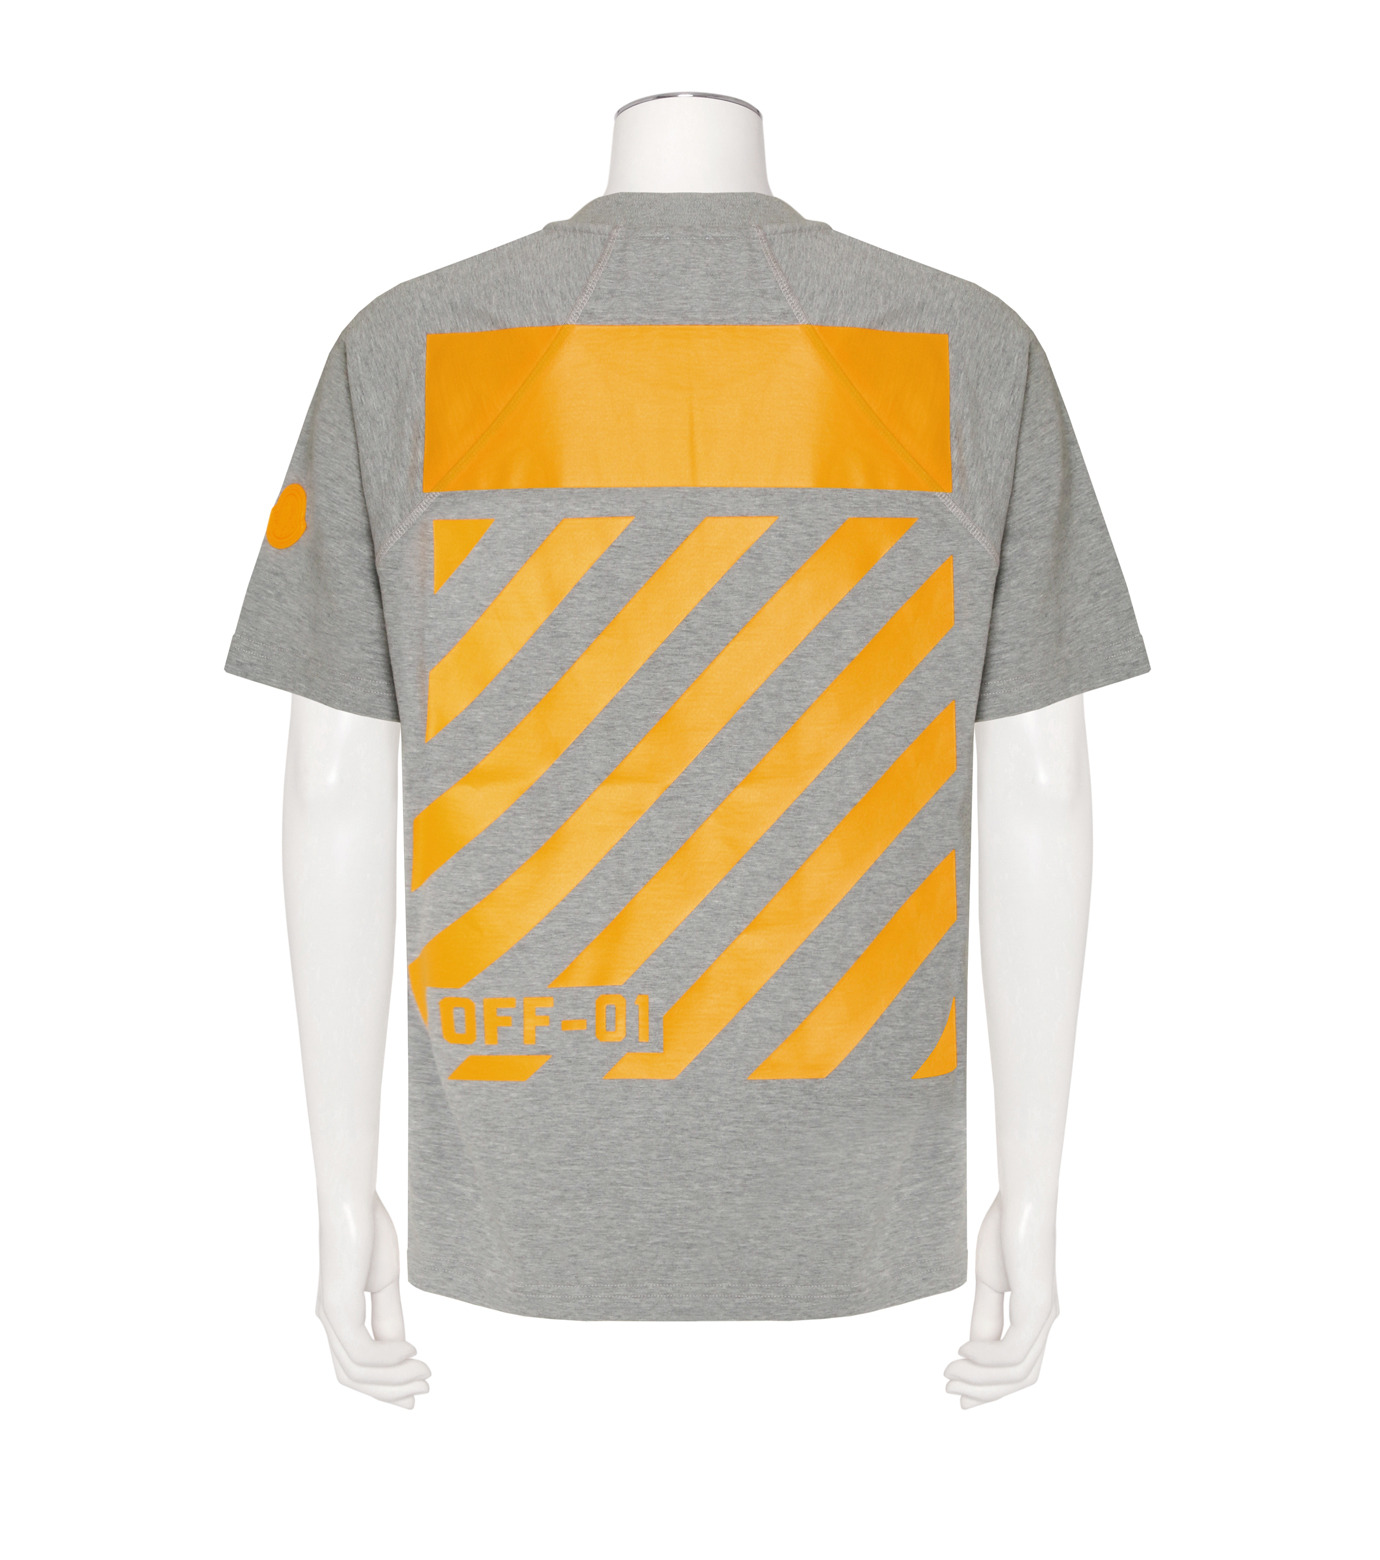 Moncler Off White()のPrint T-GRAY(カットソー/cut and sewn)-800125083152-11 拡大詳細画像2